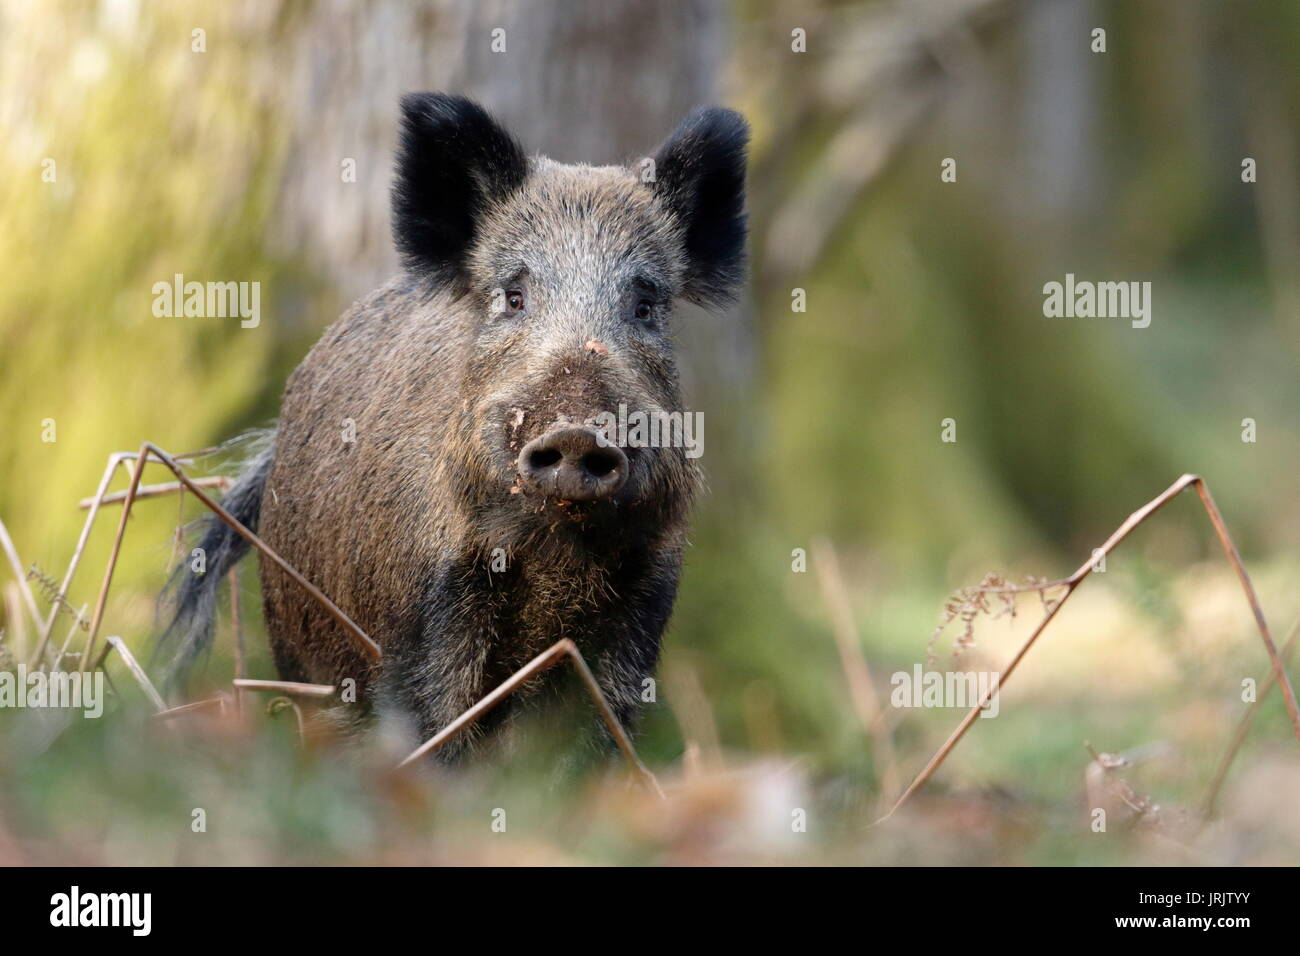 Wild Boar (Sus scrofa), Forest of Dean, Gloucestershire UK - Stock Image